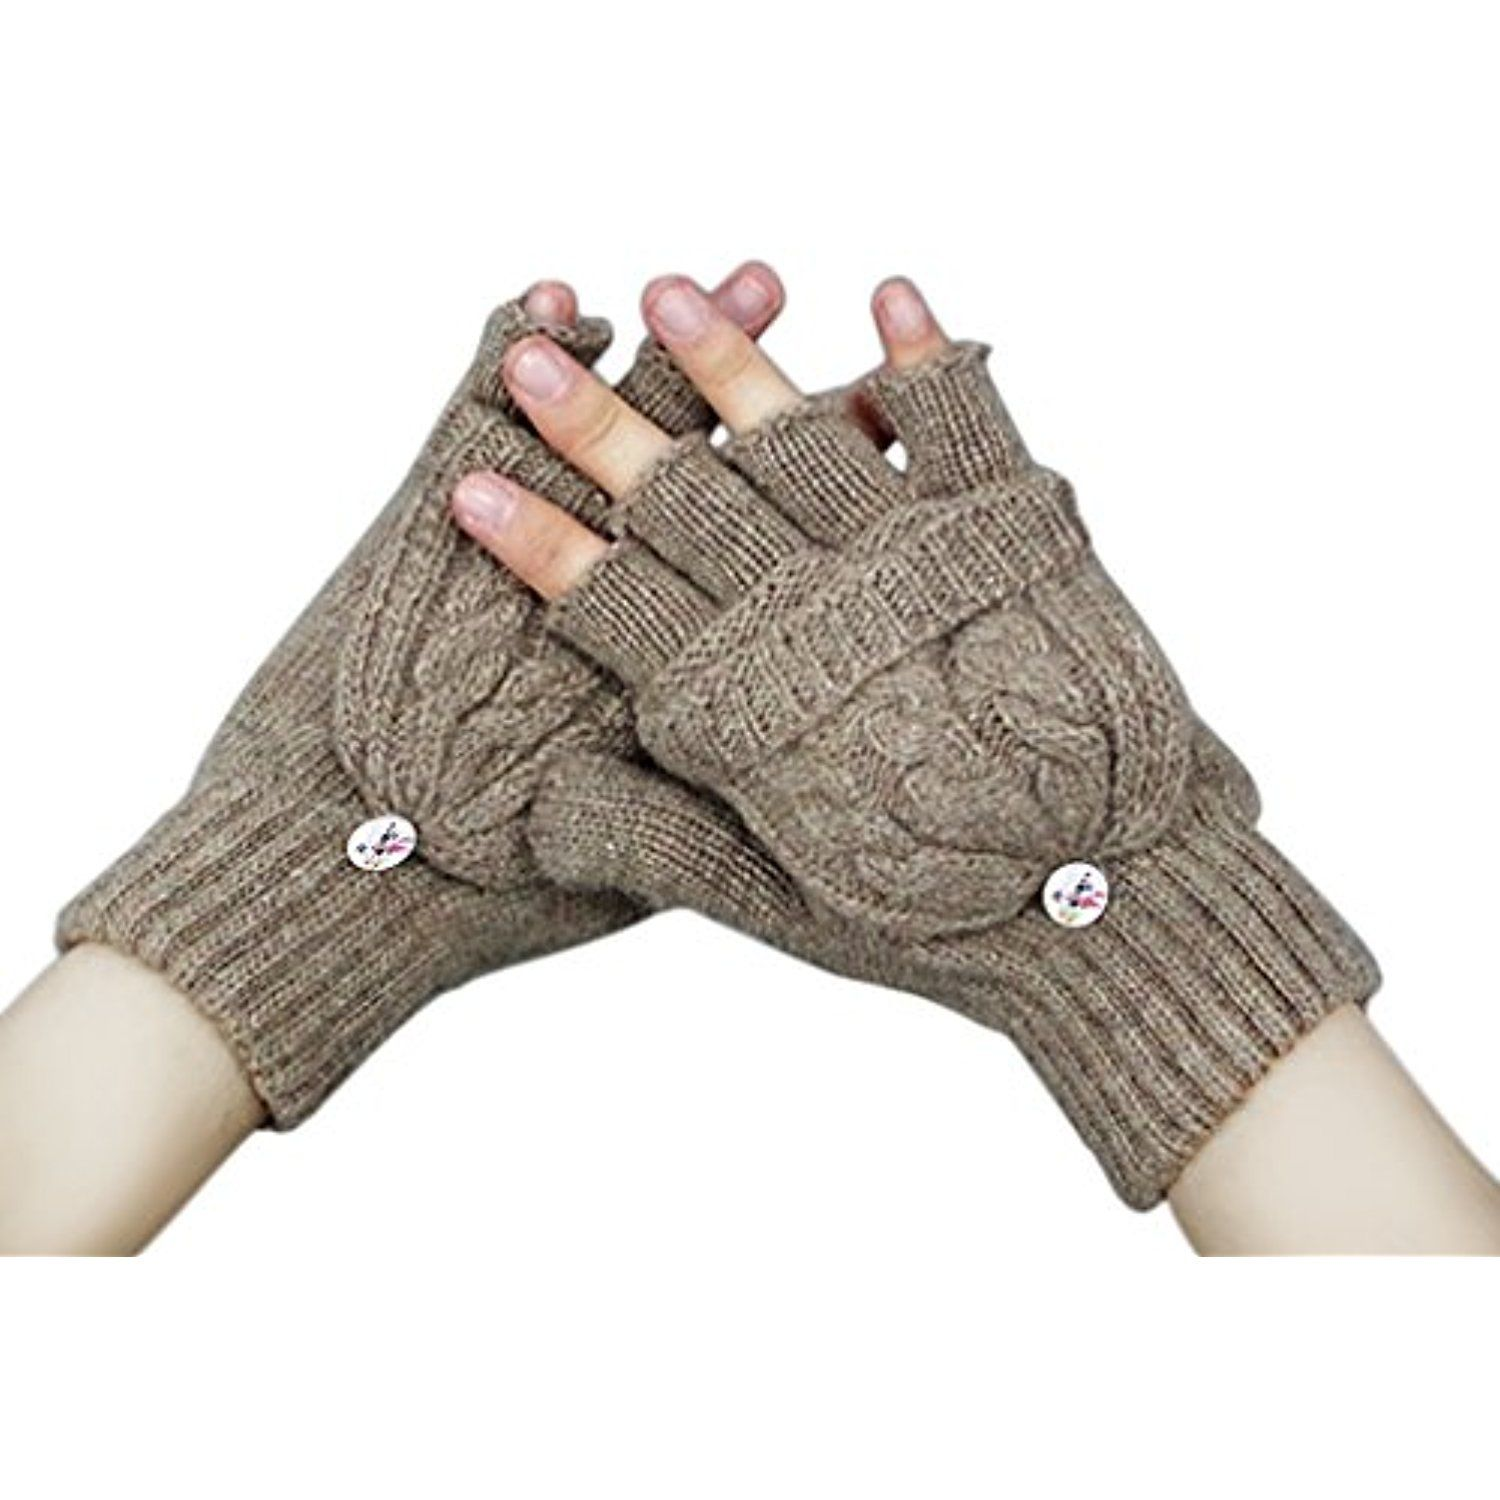 Kids Convertible Mittens Kitten Thermal Girls Cold Weather Gloves for New Year Holiday Season